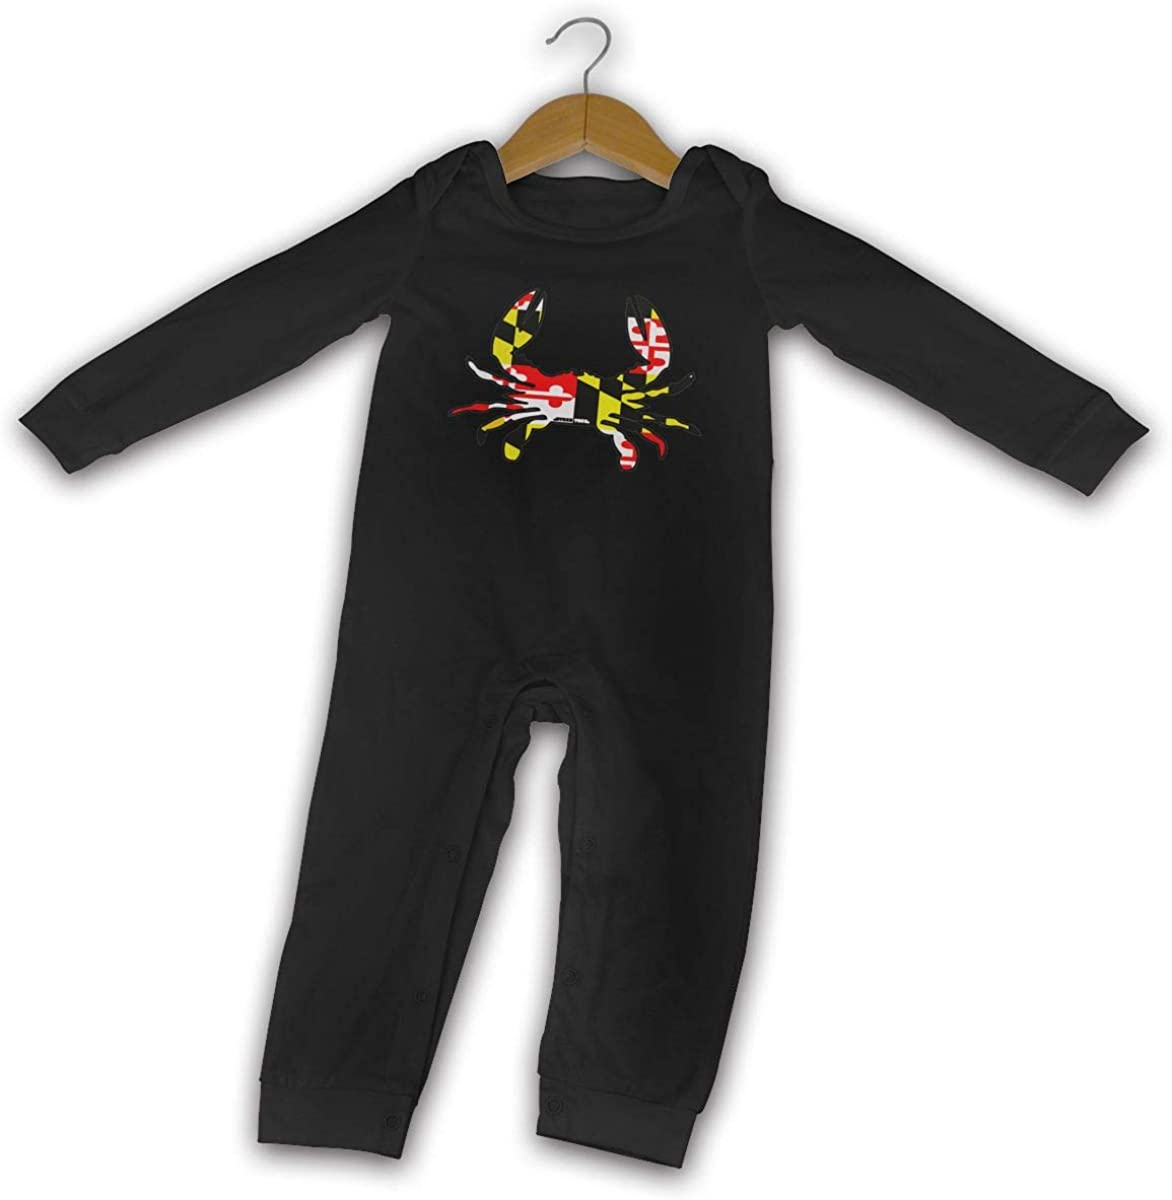 YELTY6F Maryland Flag Crab Printed Newborn Baby Jumpsuit Long Sleeve Romper Black